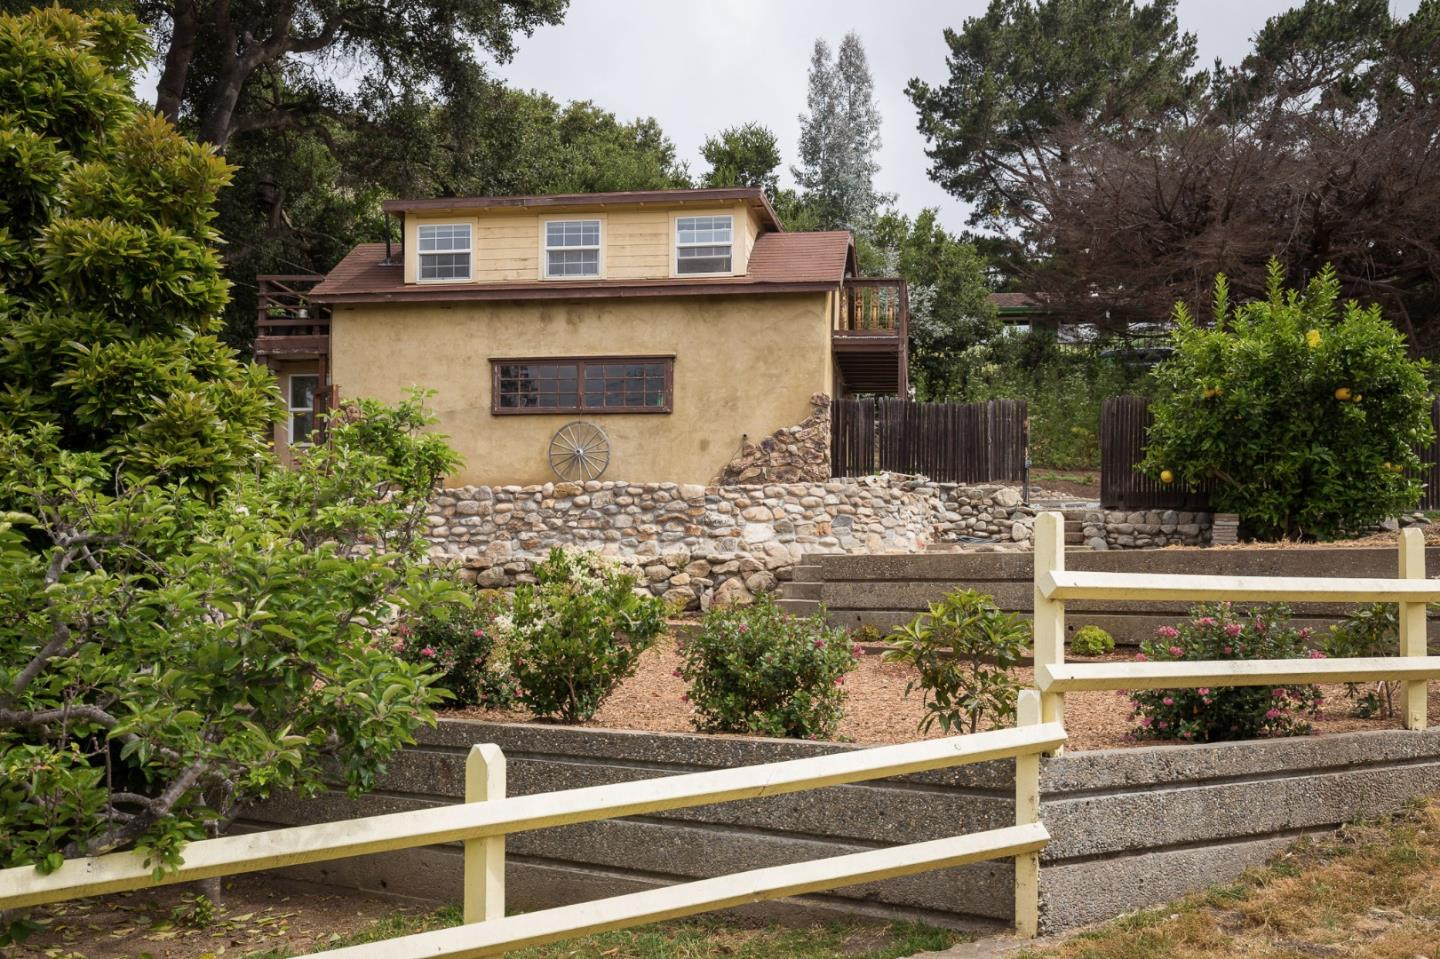 Additional photo for property listing at 6445 Brookdale Drive 6445 Brookdale Drive Carmel, California 93923 United States